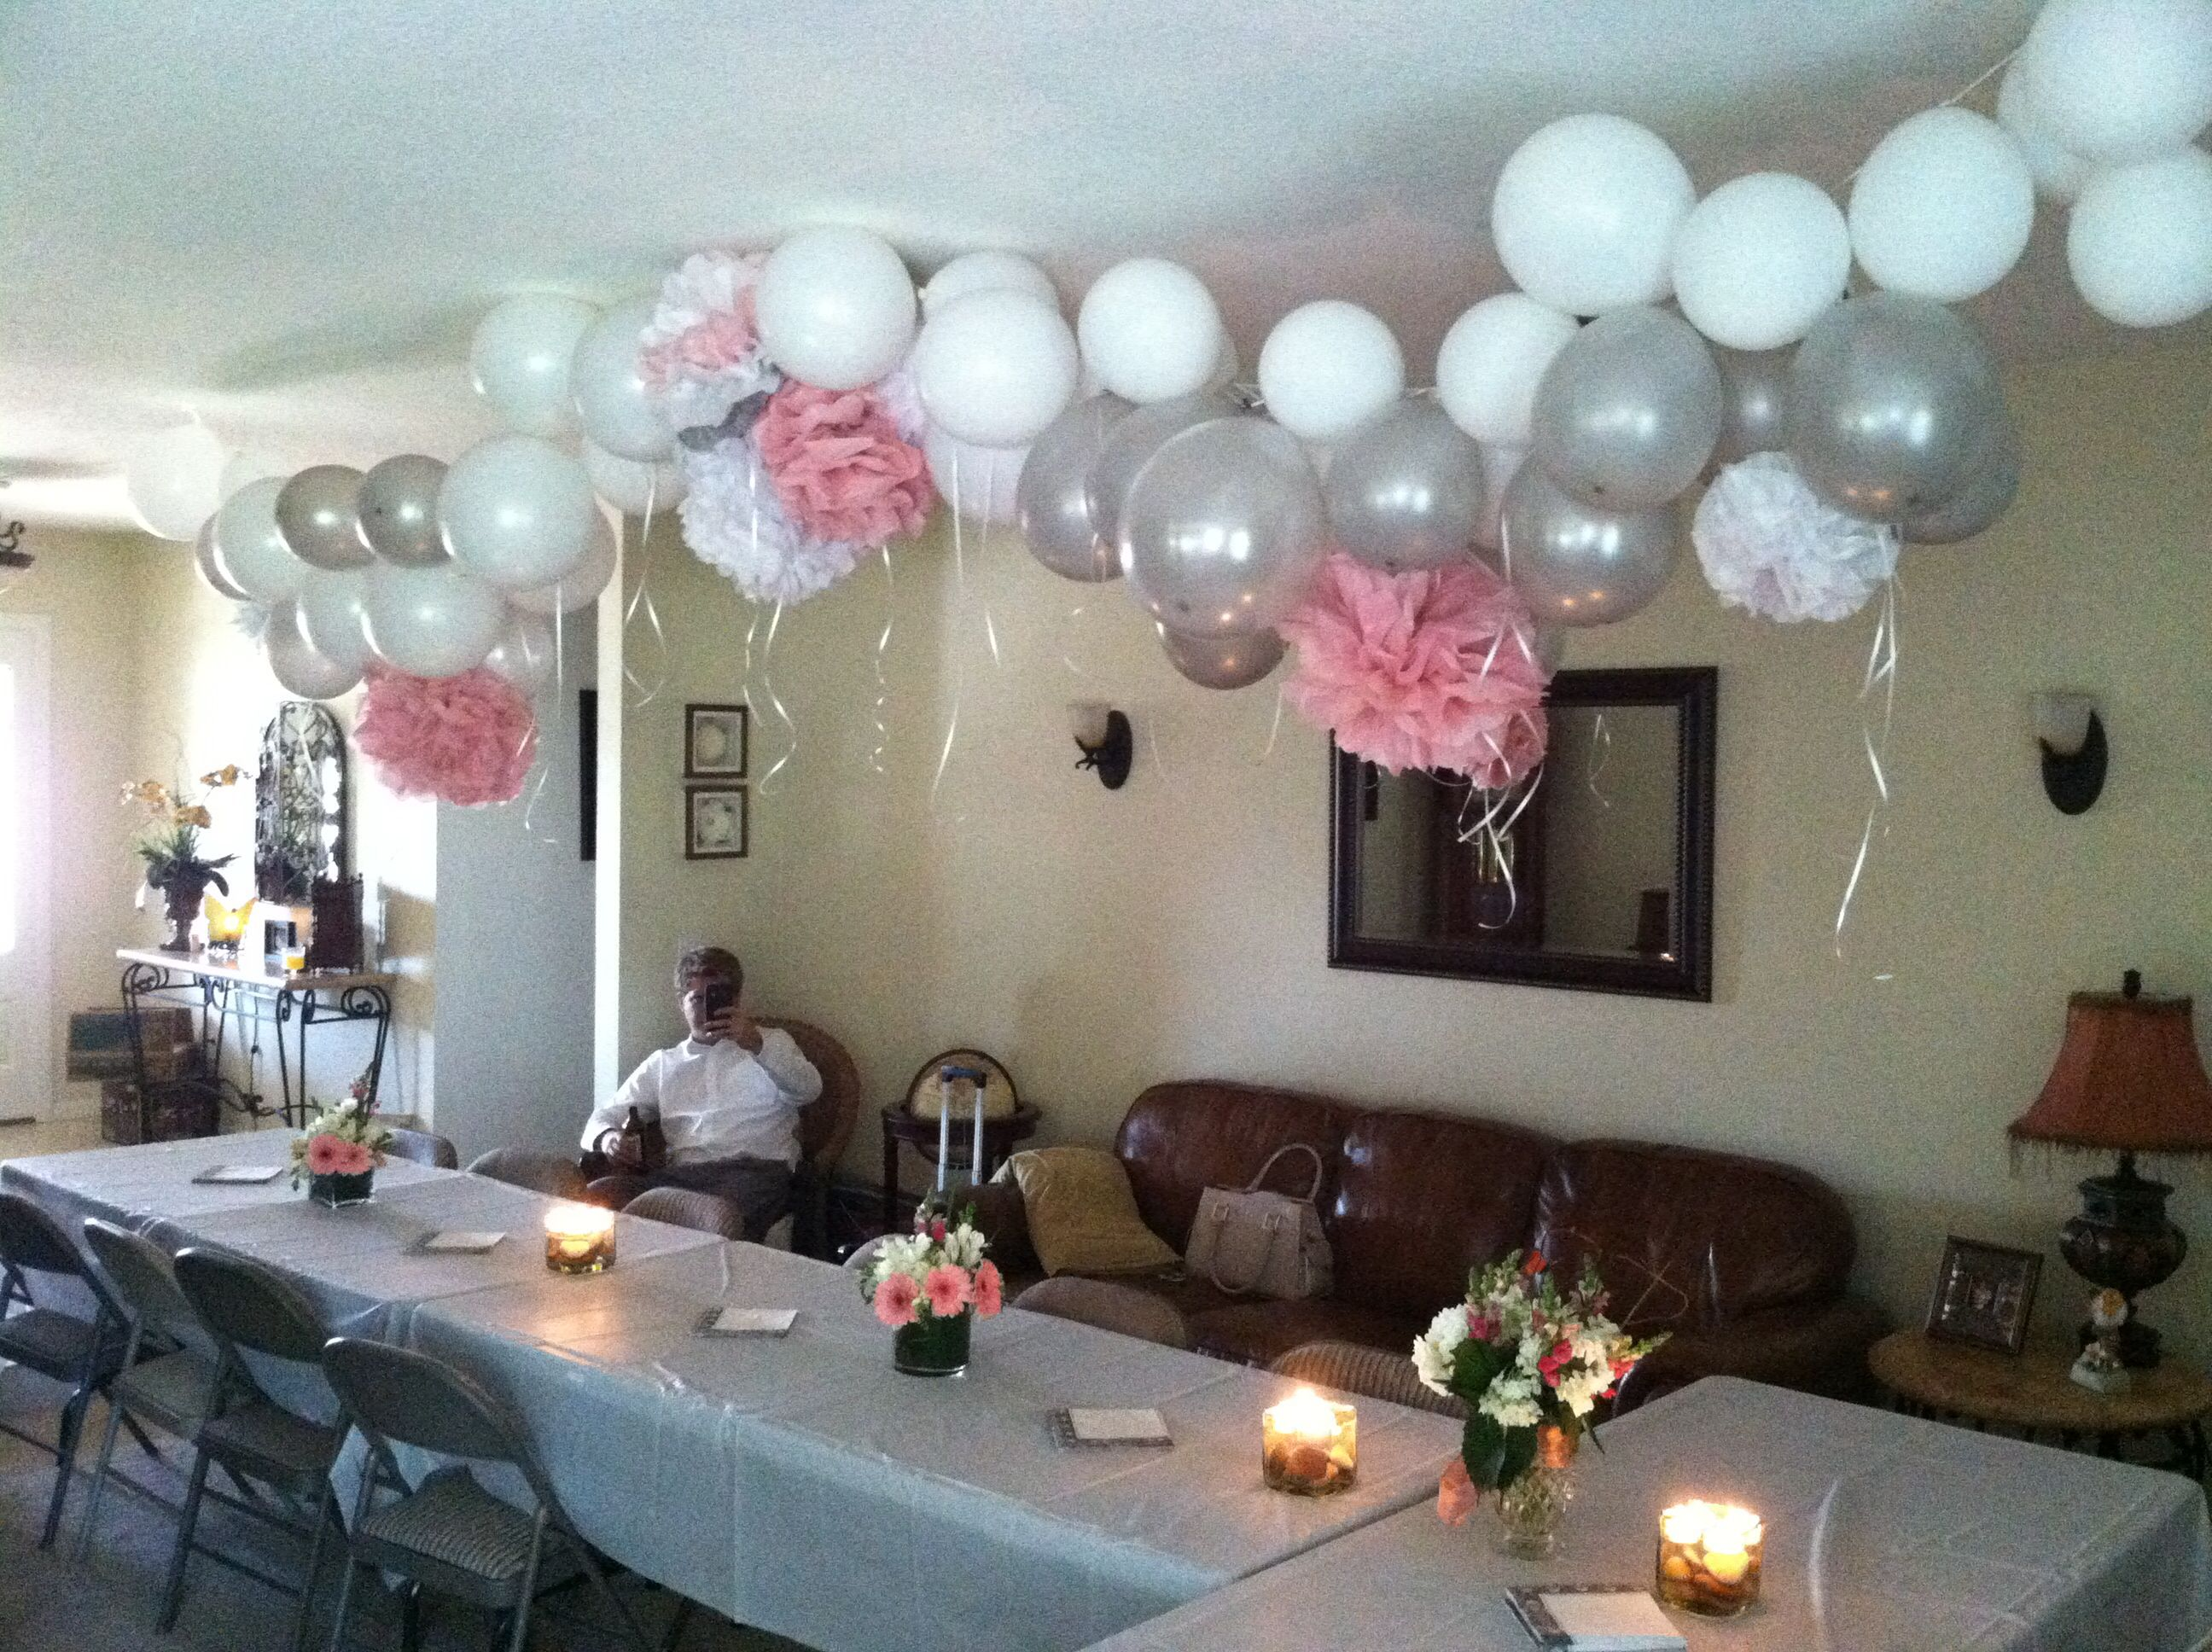 My parents surprise anniversary party decor ideas